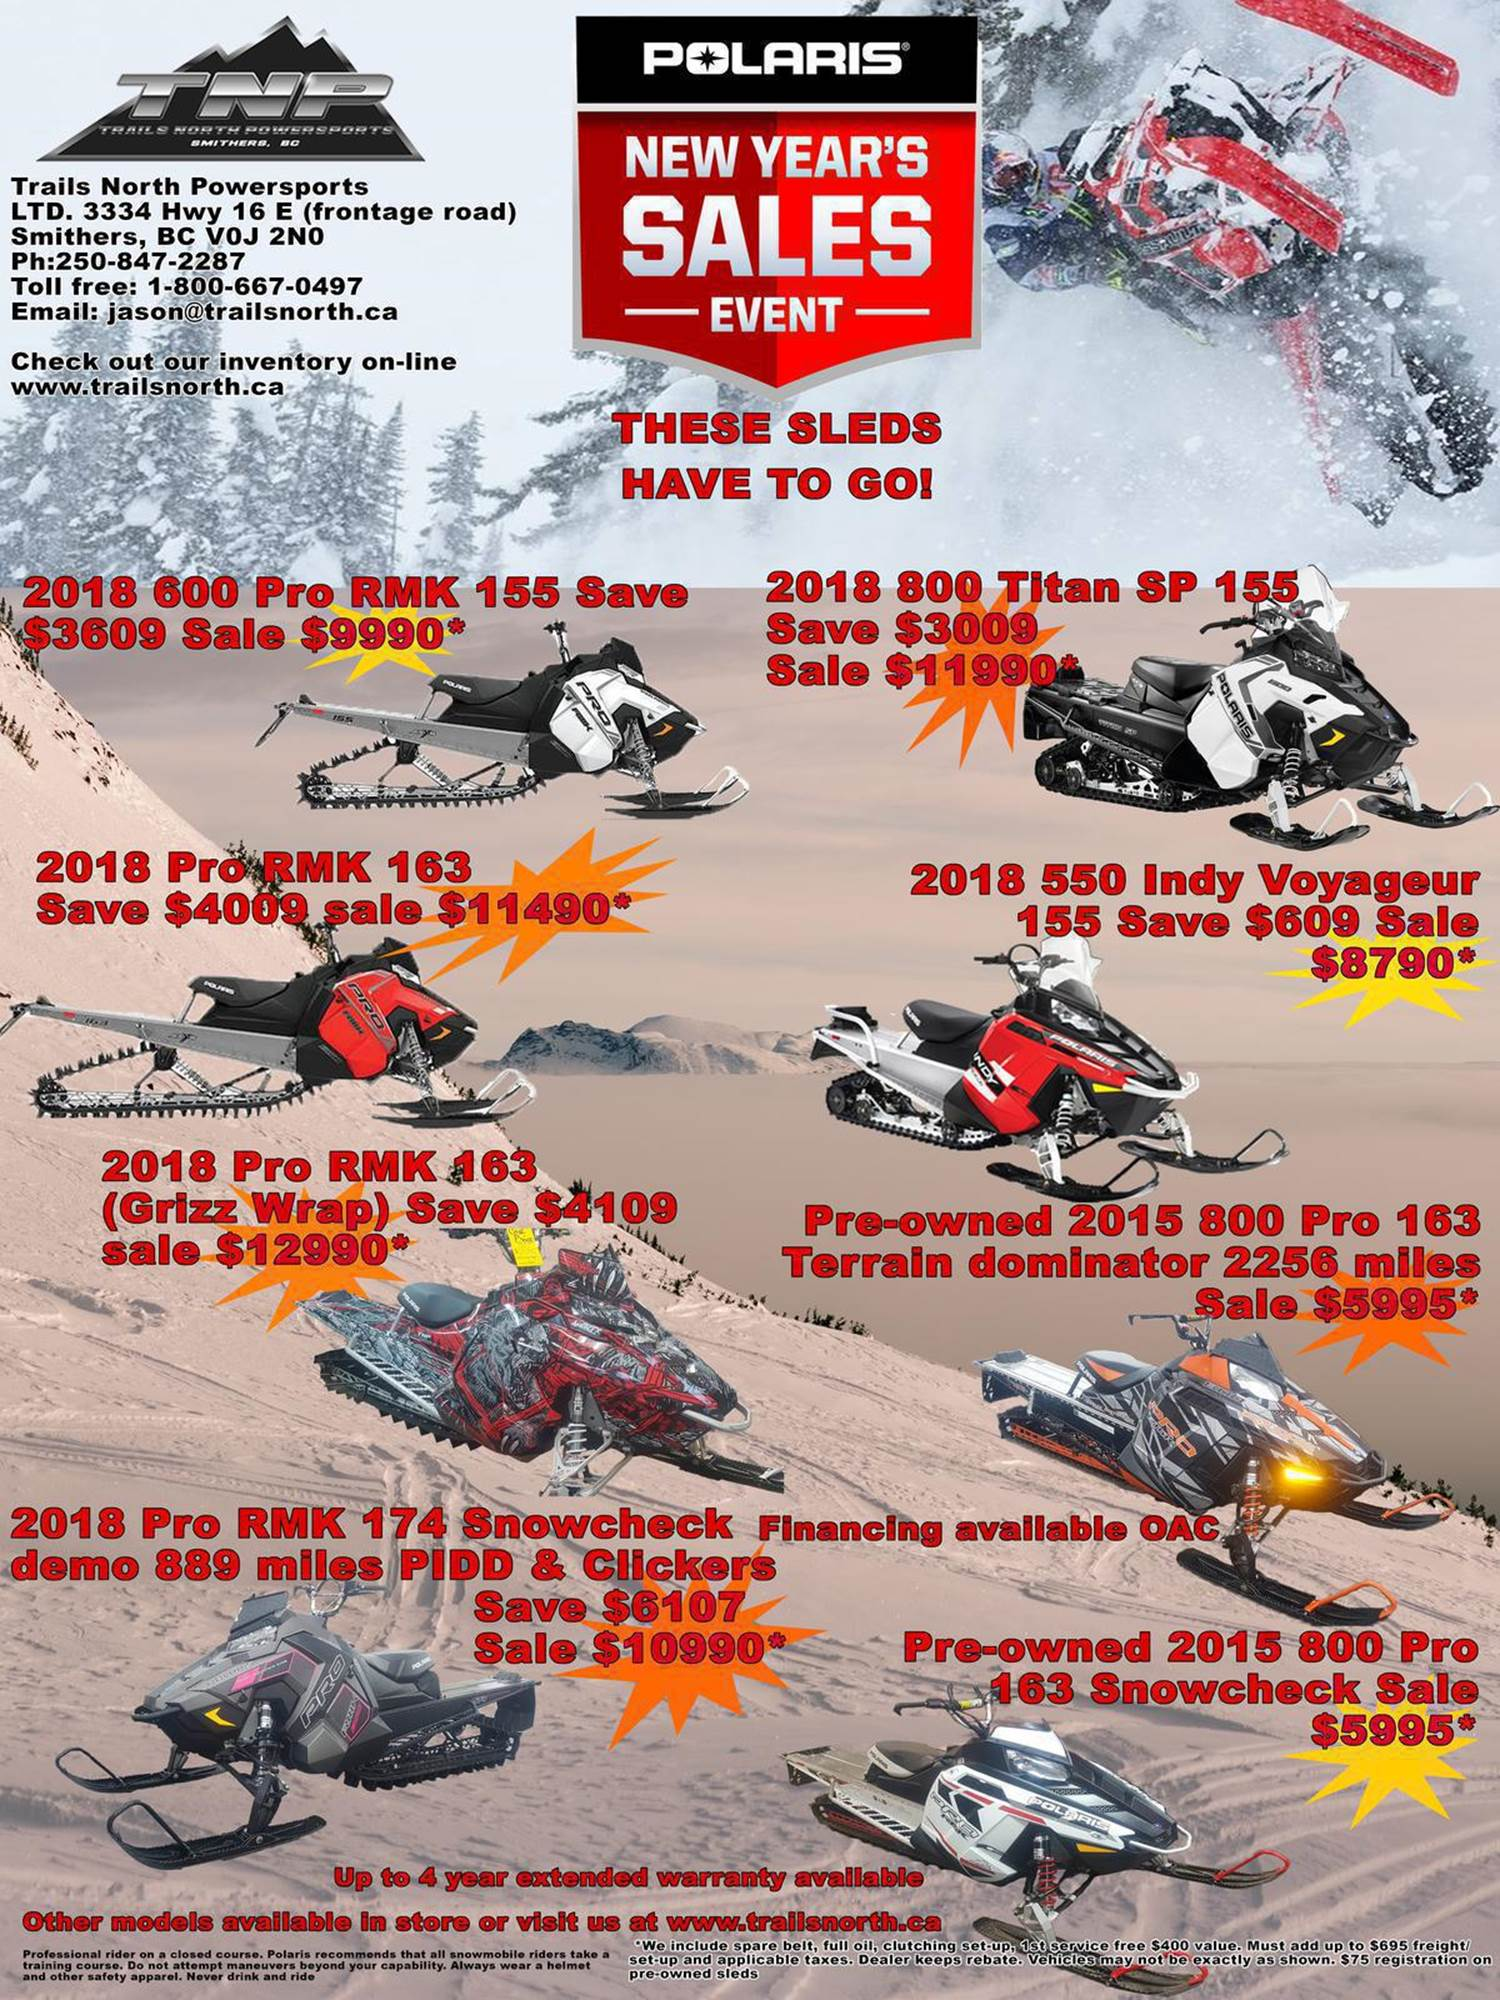 polaris new years sales event